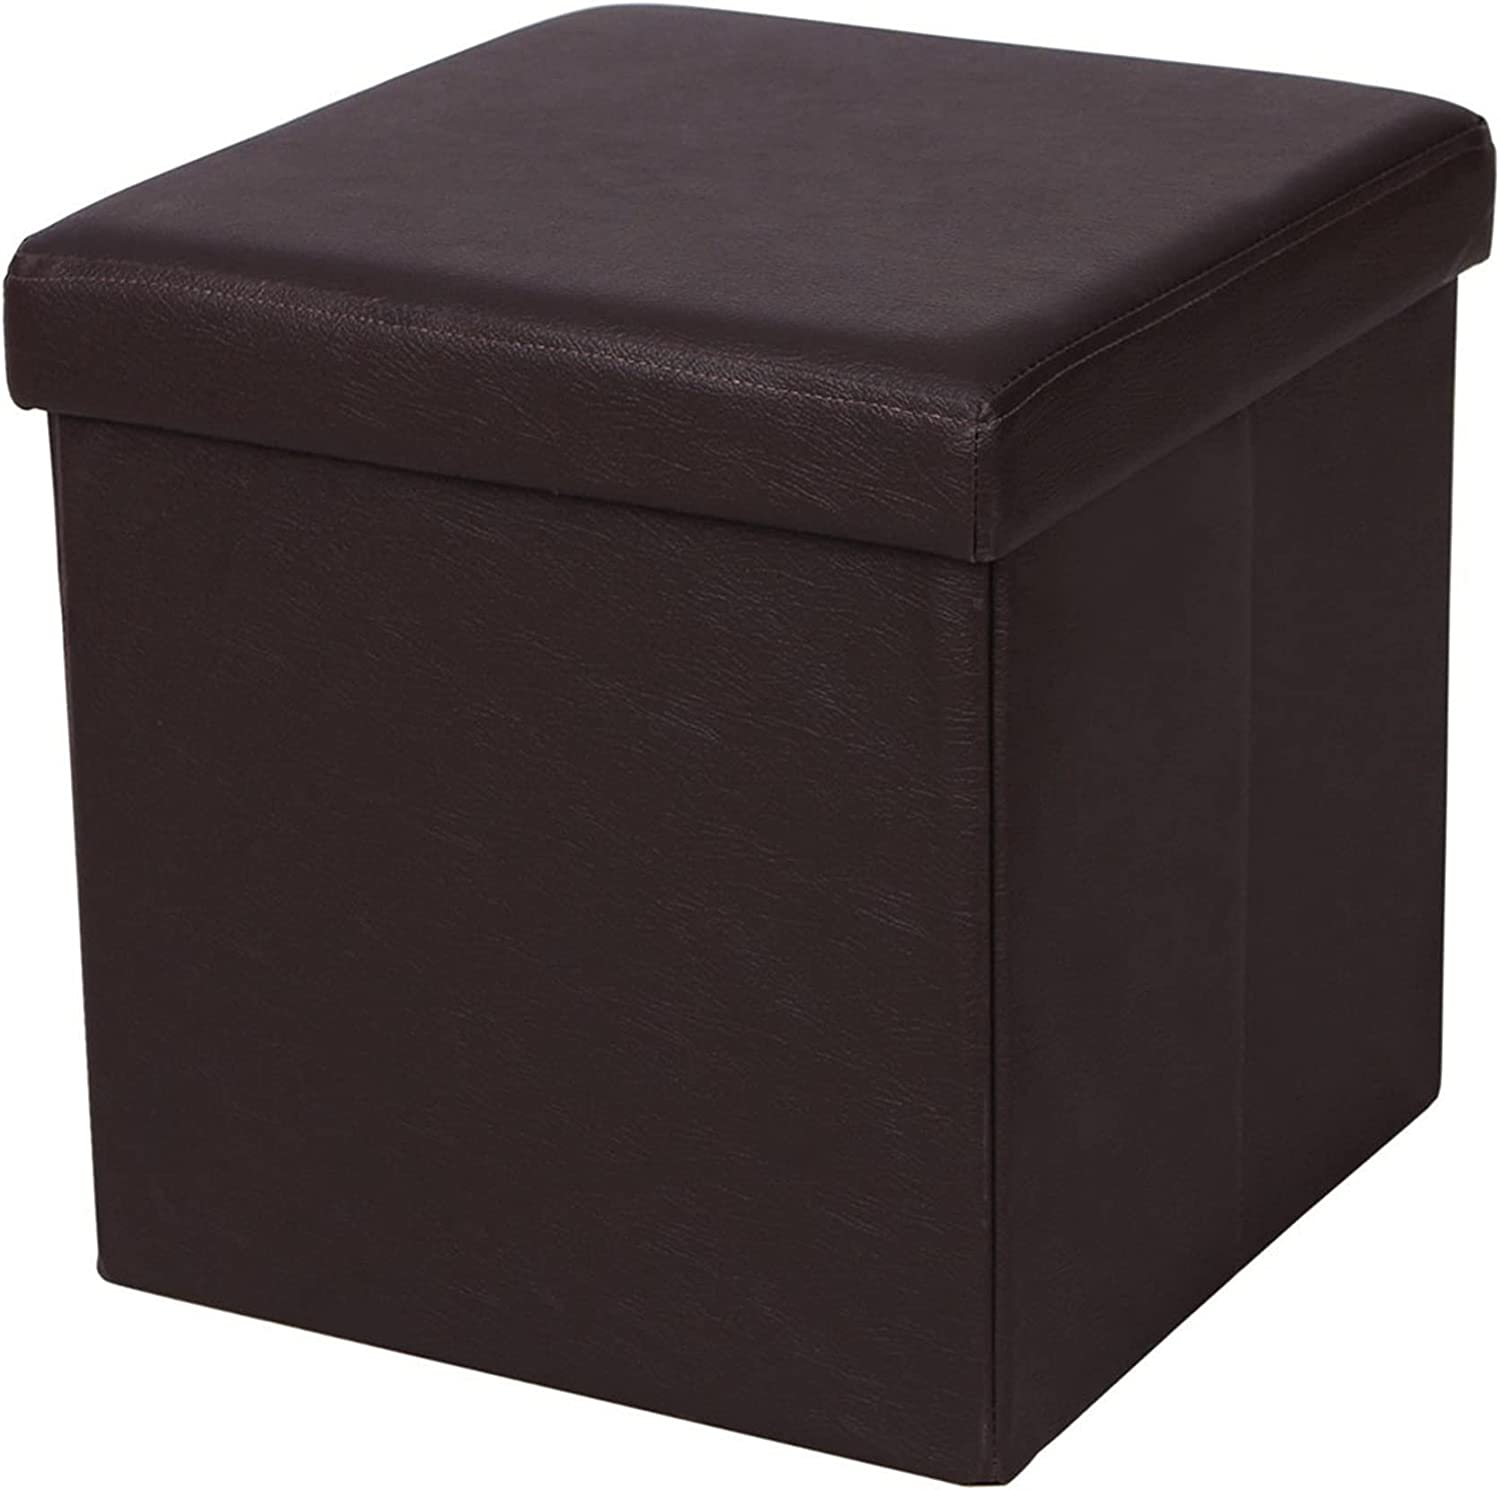 Xcasso PU Leather Smooth Footstool Brown Superior C Daily bargain sale for 383838cm Direct store